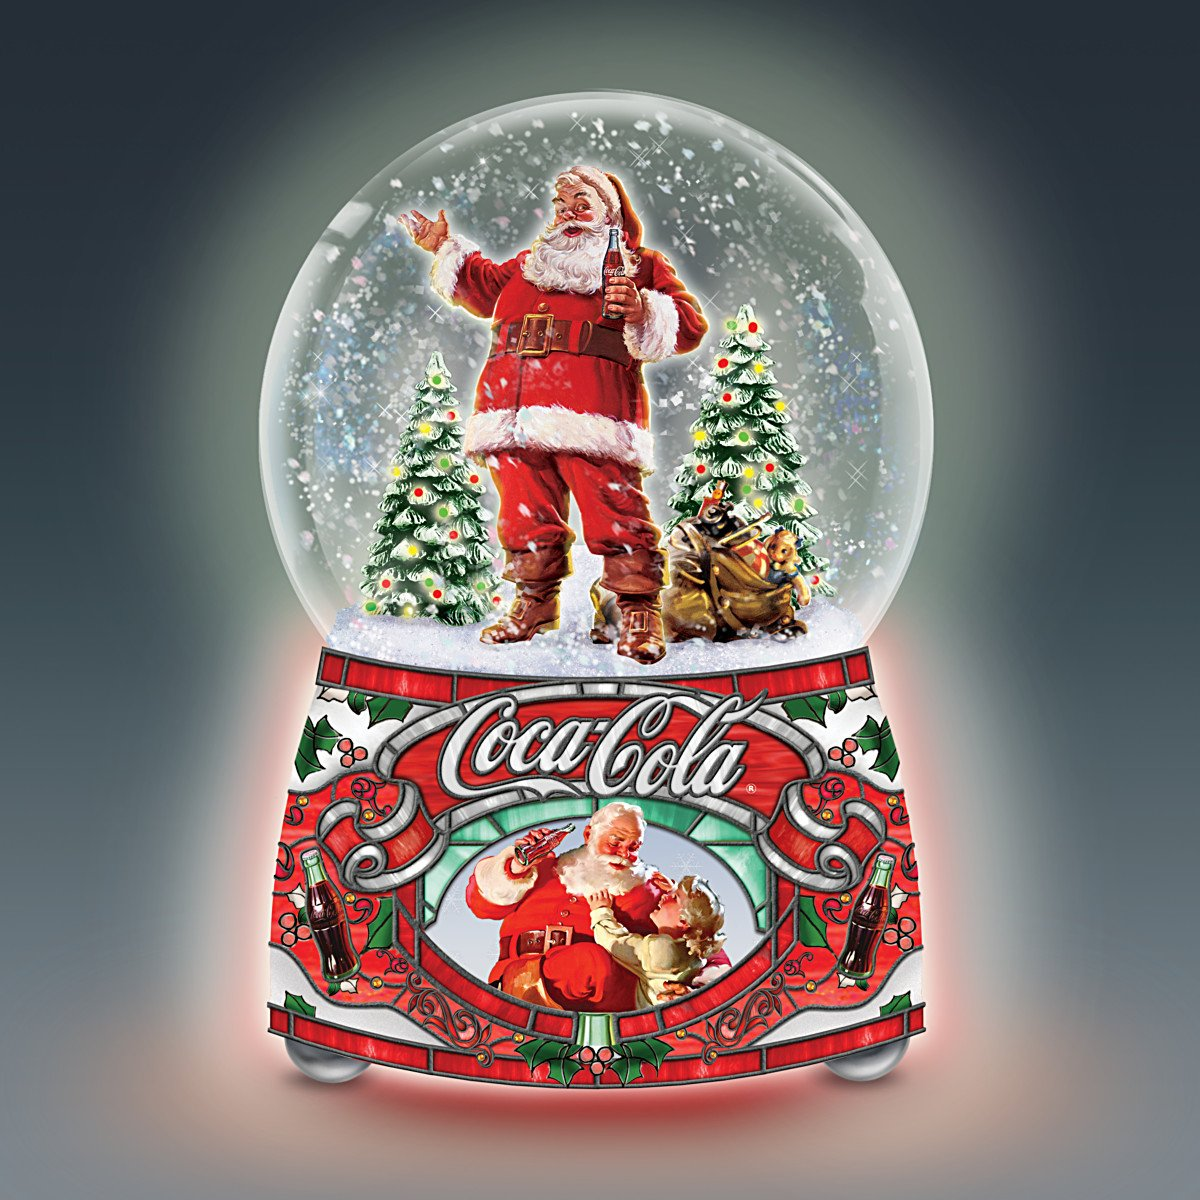 COCA COLA Santa Musical Glitter Globe Lights Up and Plays Jingle Bells by The Bradford Exchange by Bradford Exchange (Image #4)